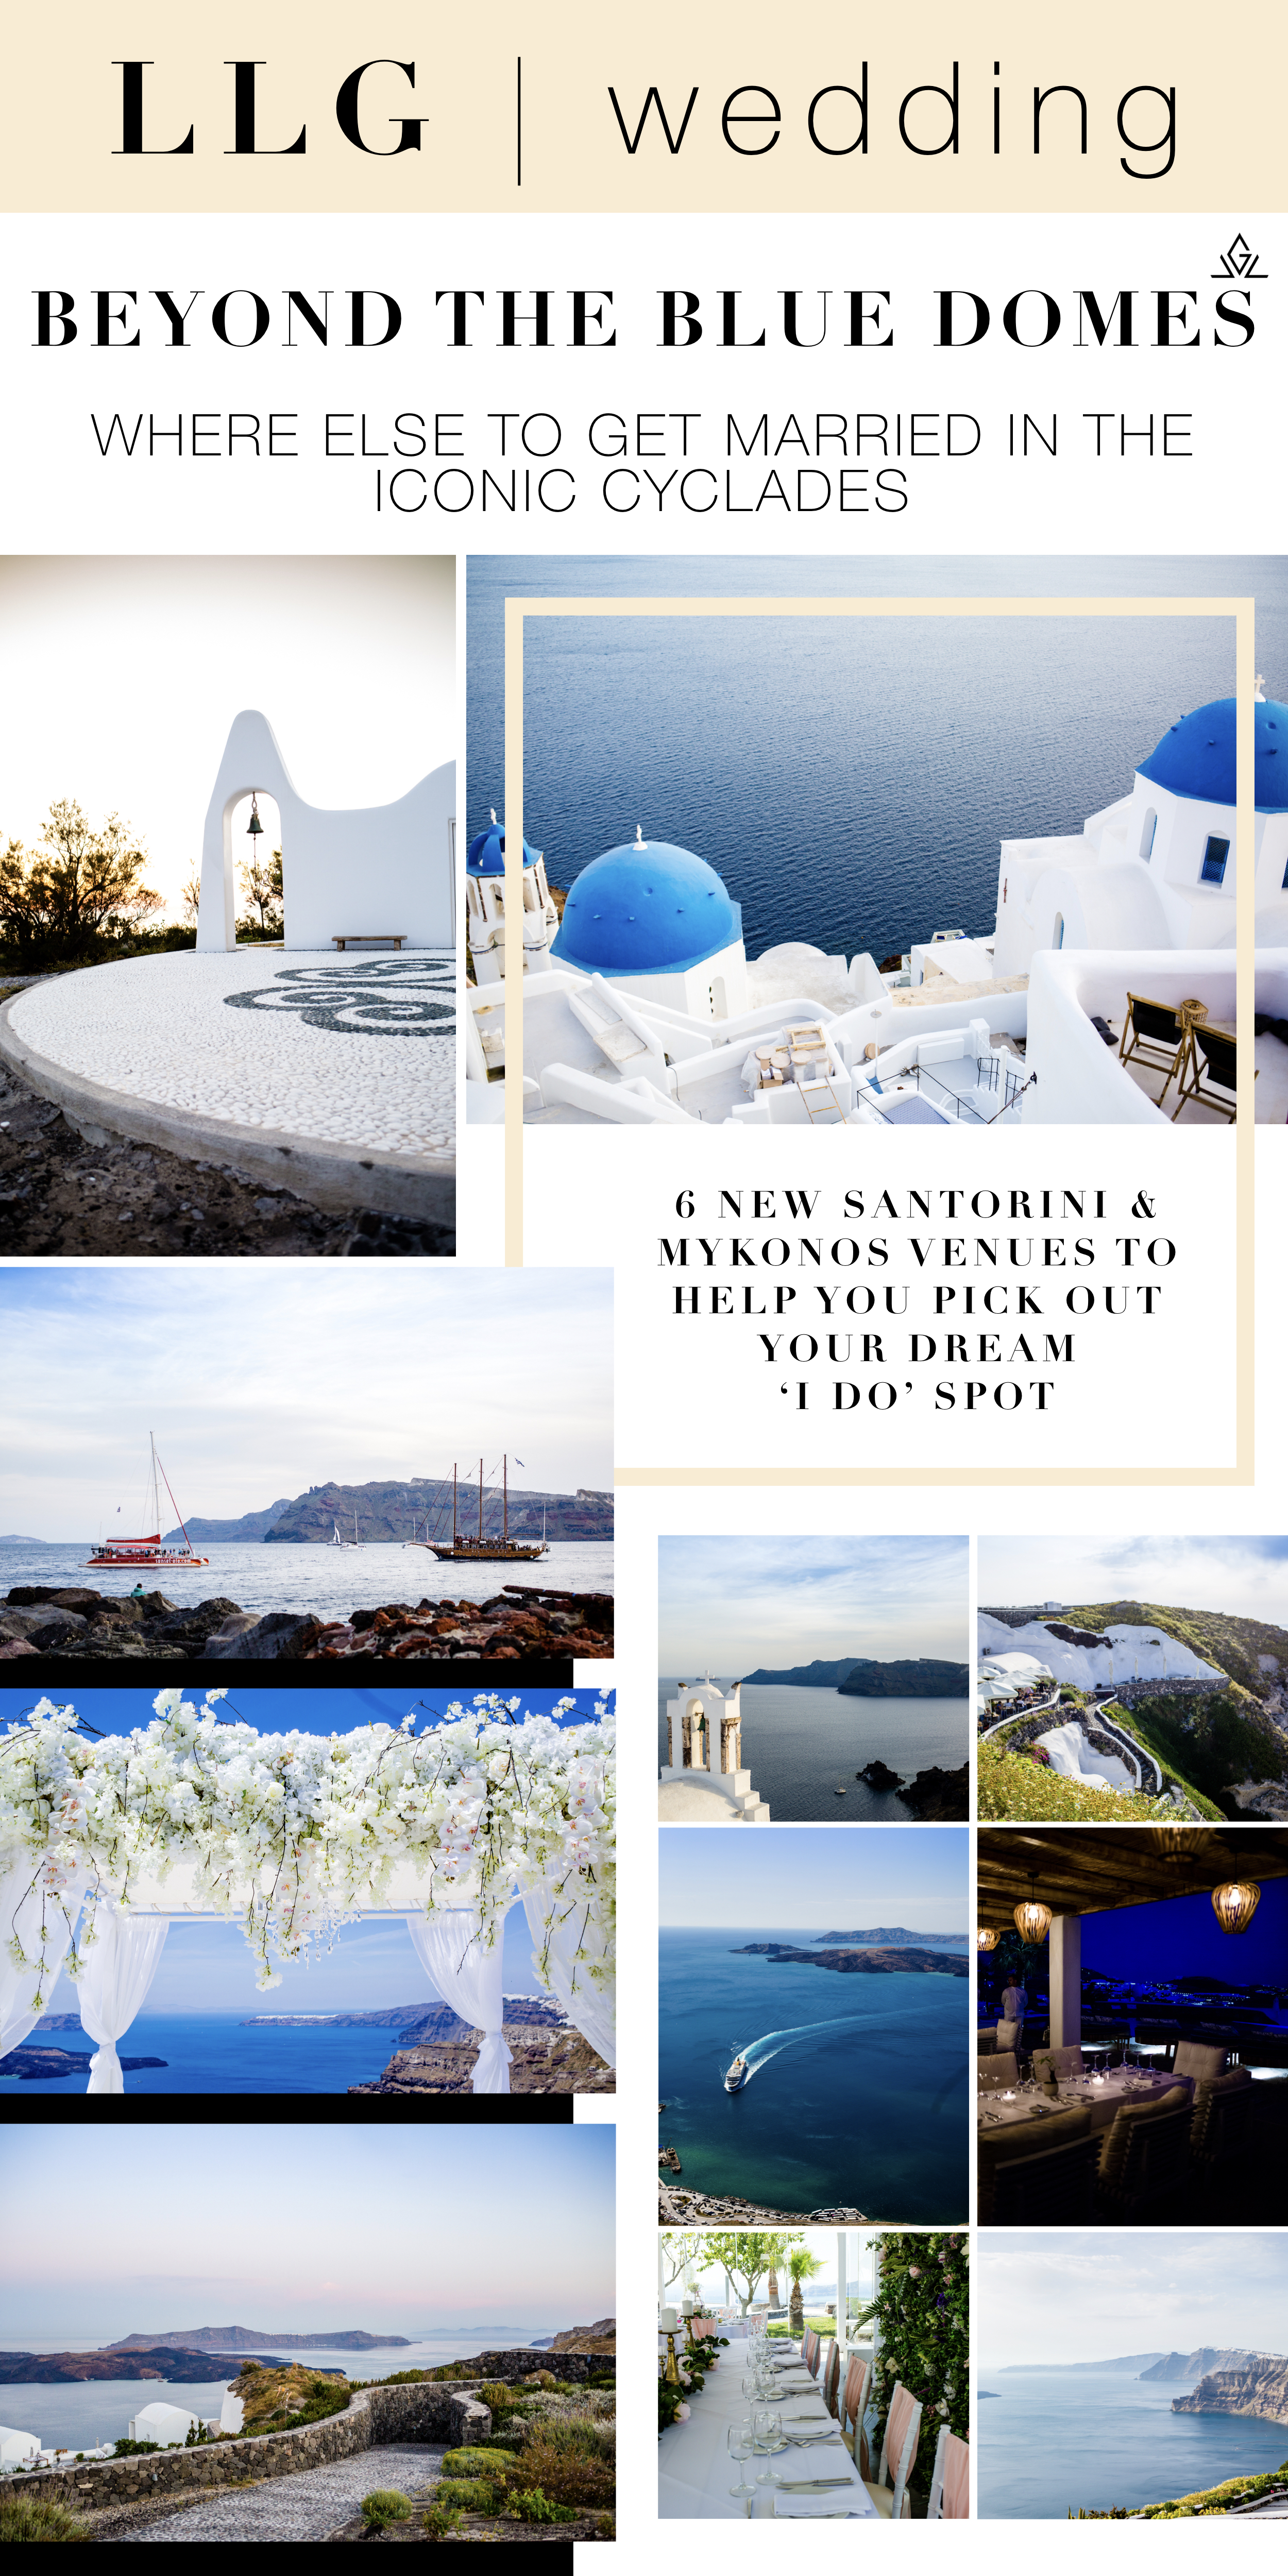 LLG_Weddings_Location_Ideas_Greece_001.jpeg